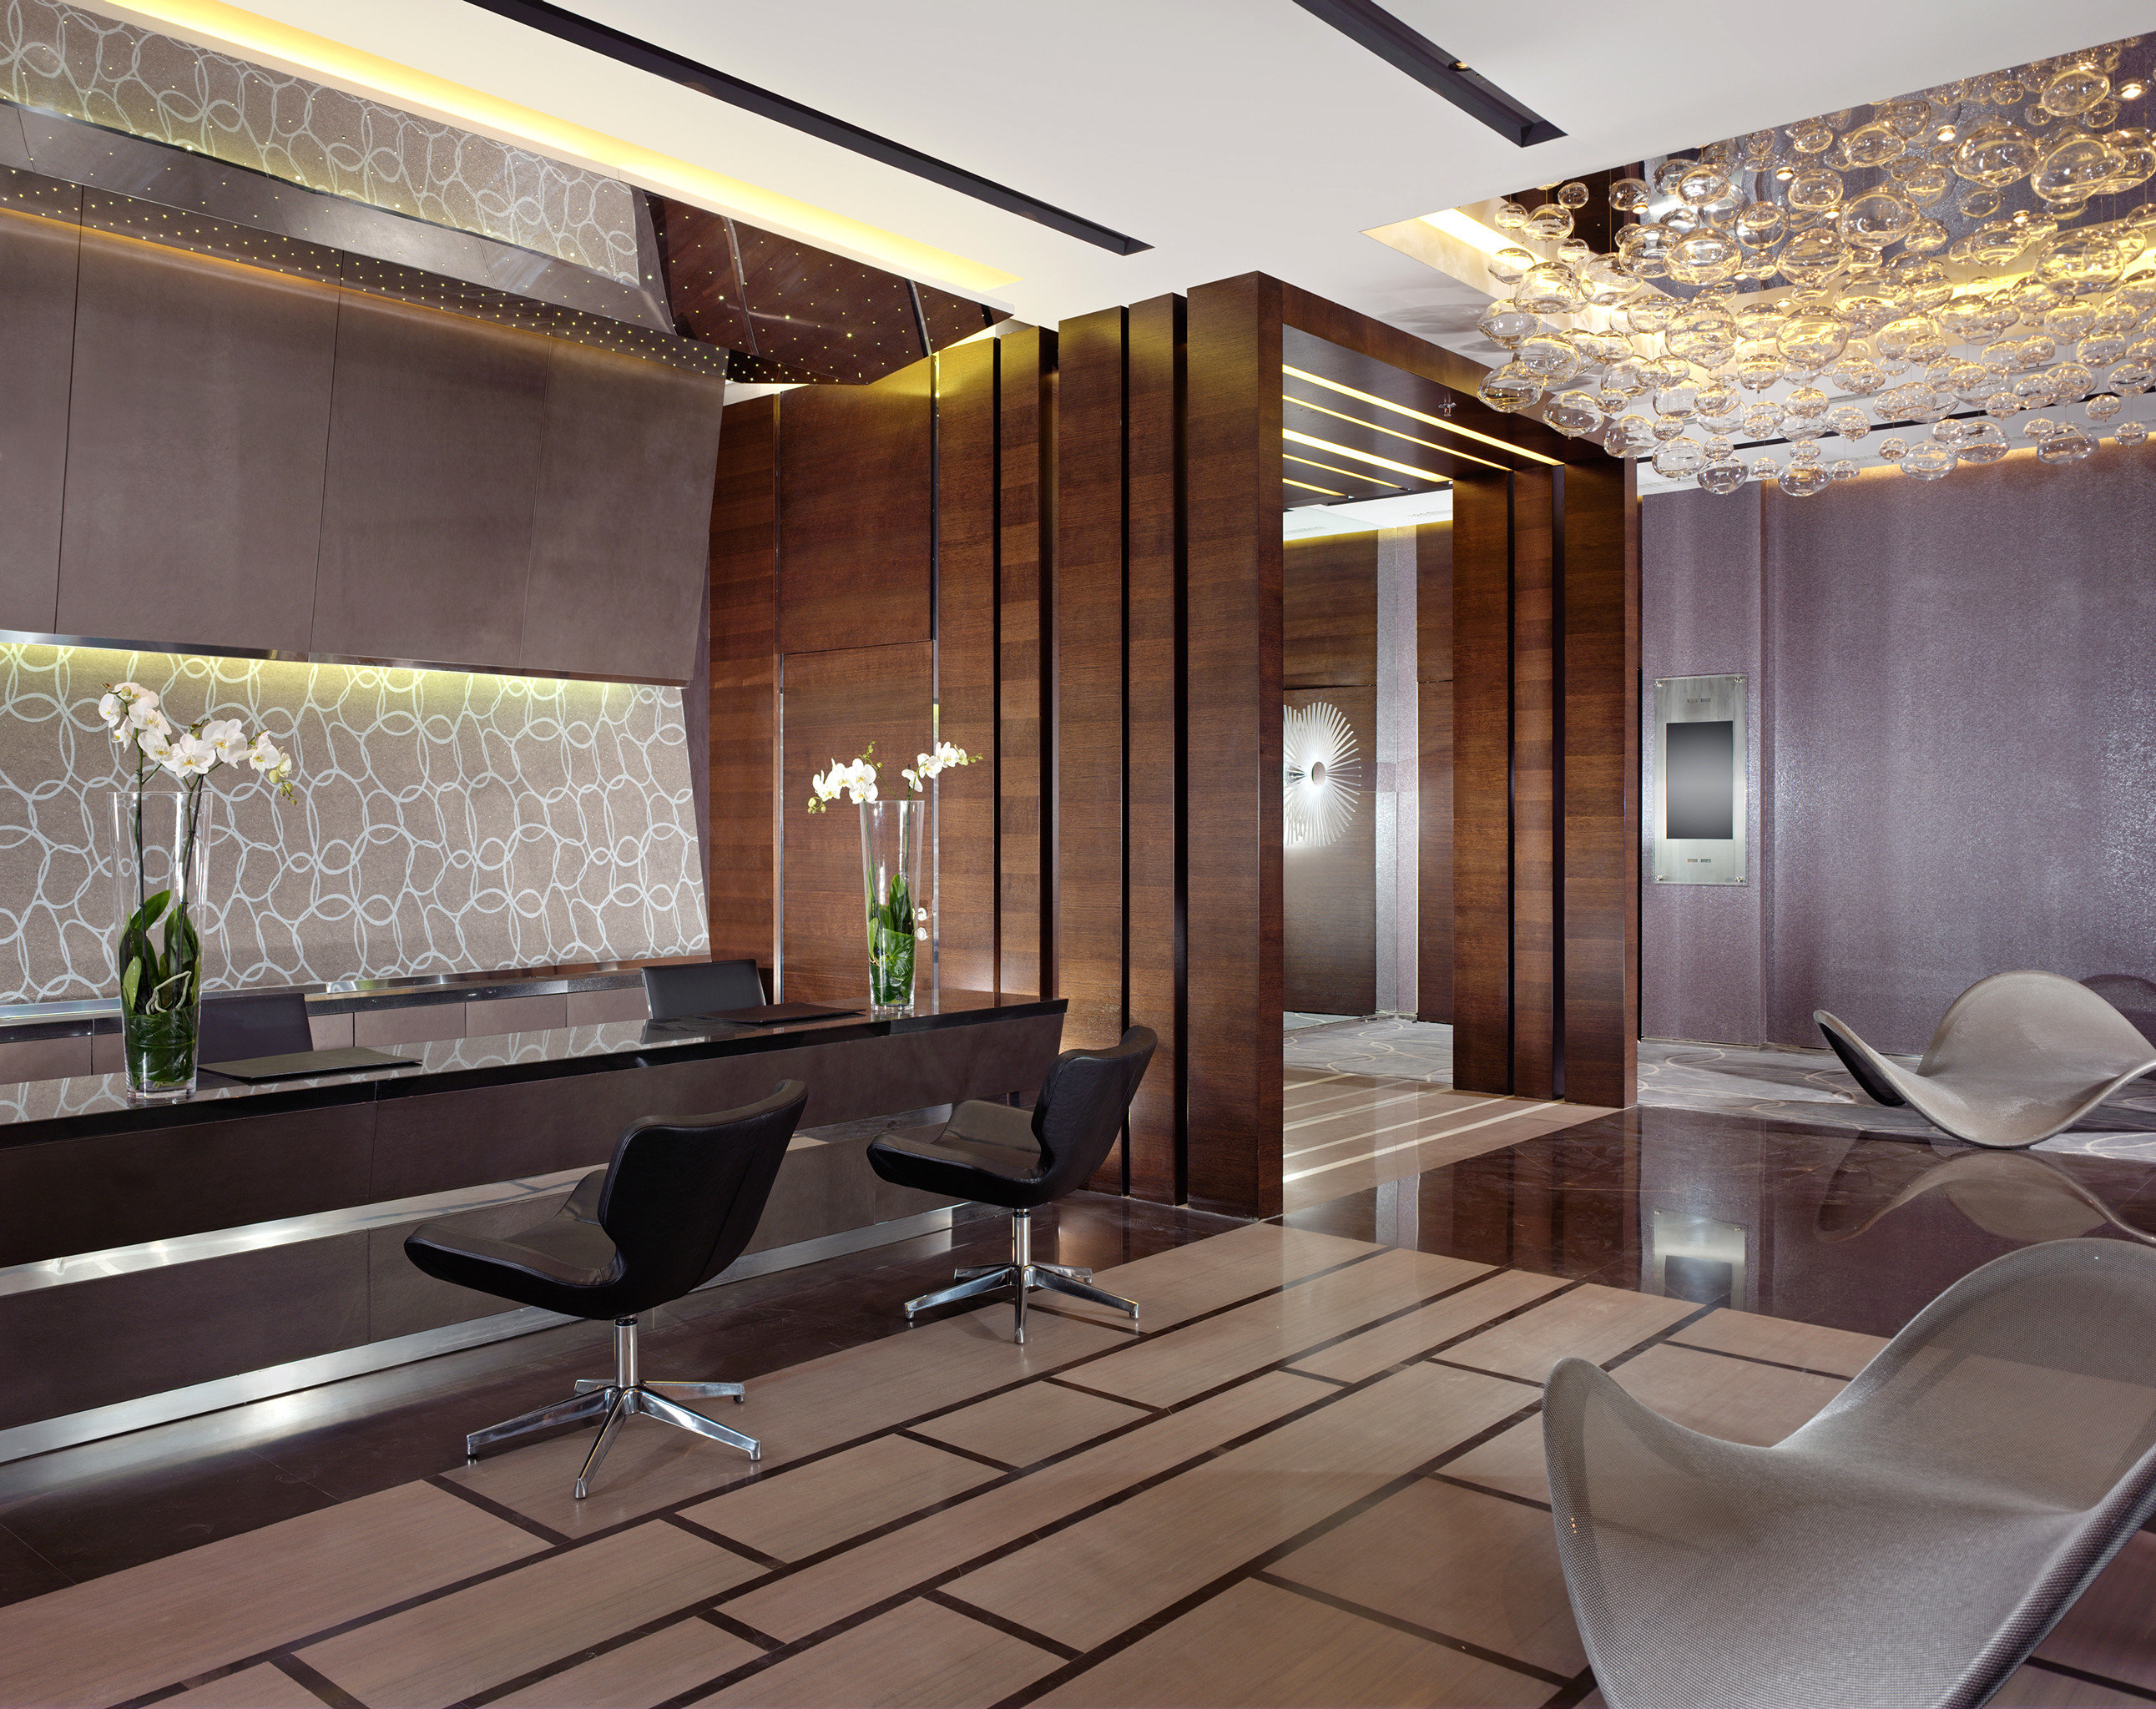 Lobby Lounge Modern property living room Architecture condominium home lighting Suite mansion professional